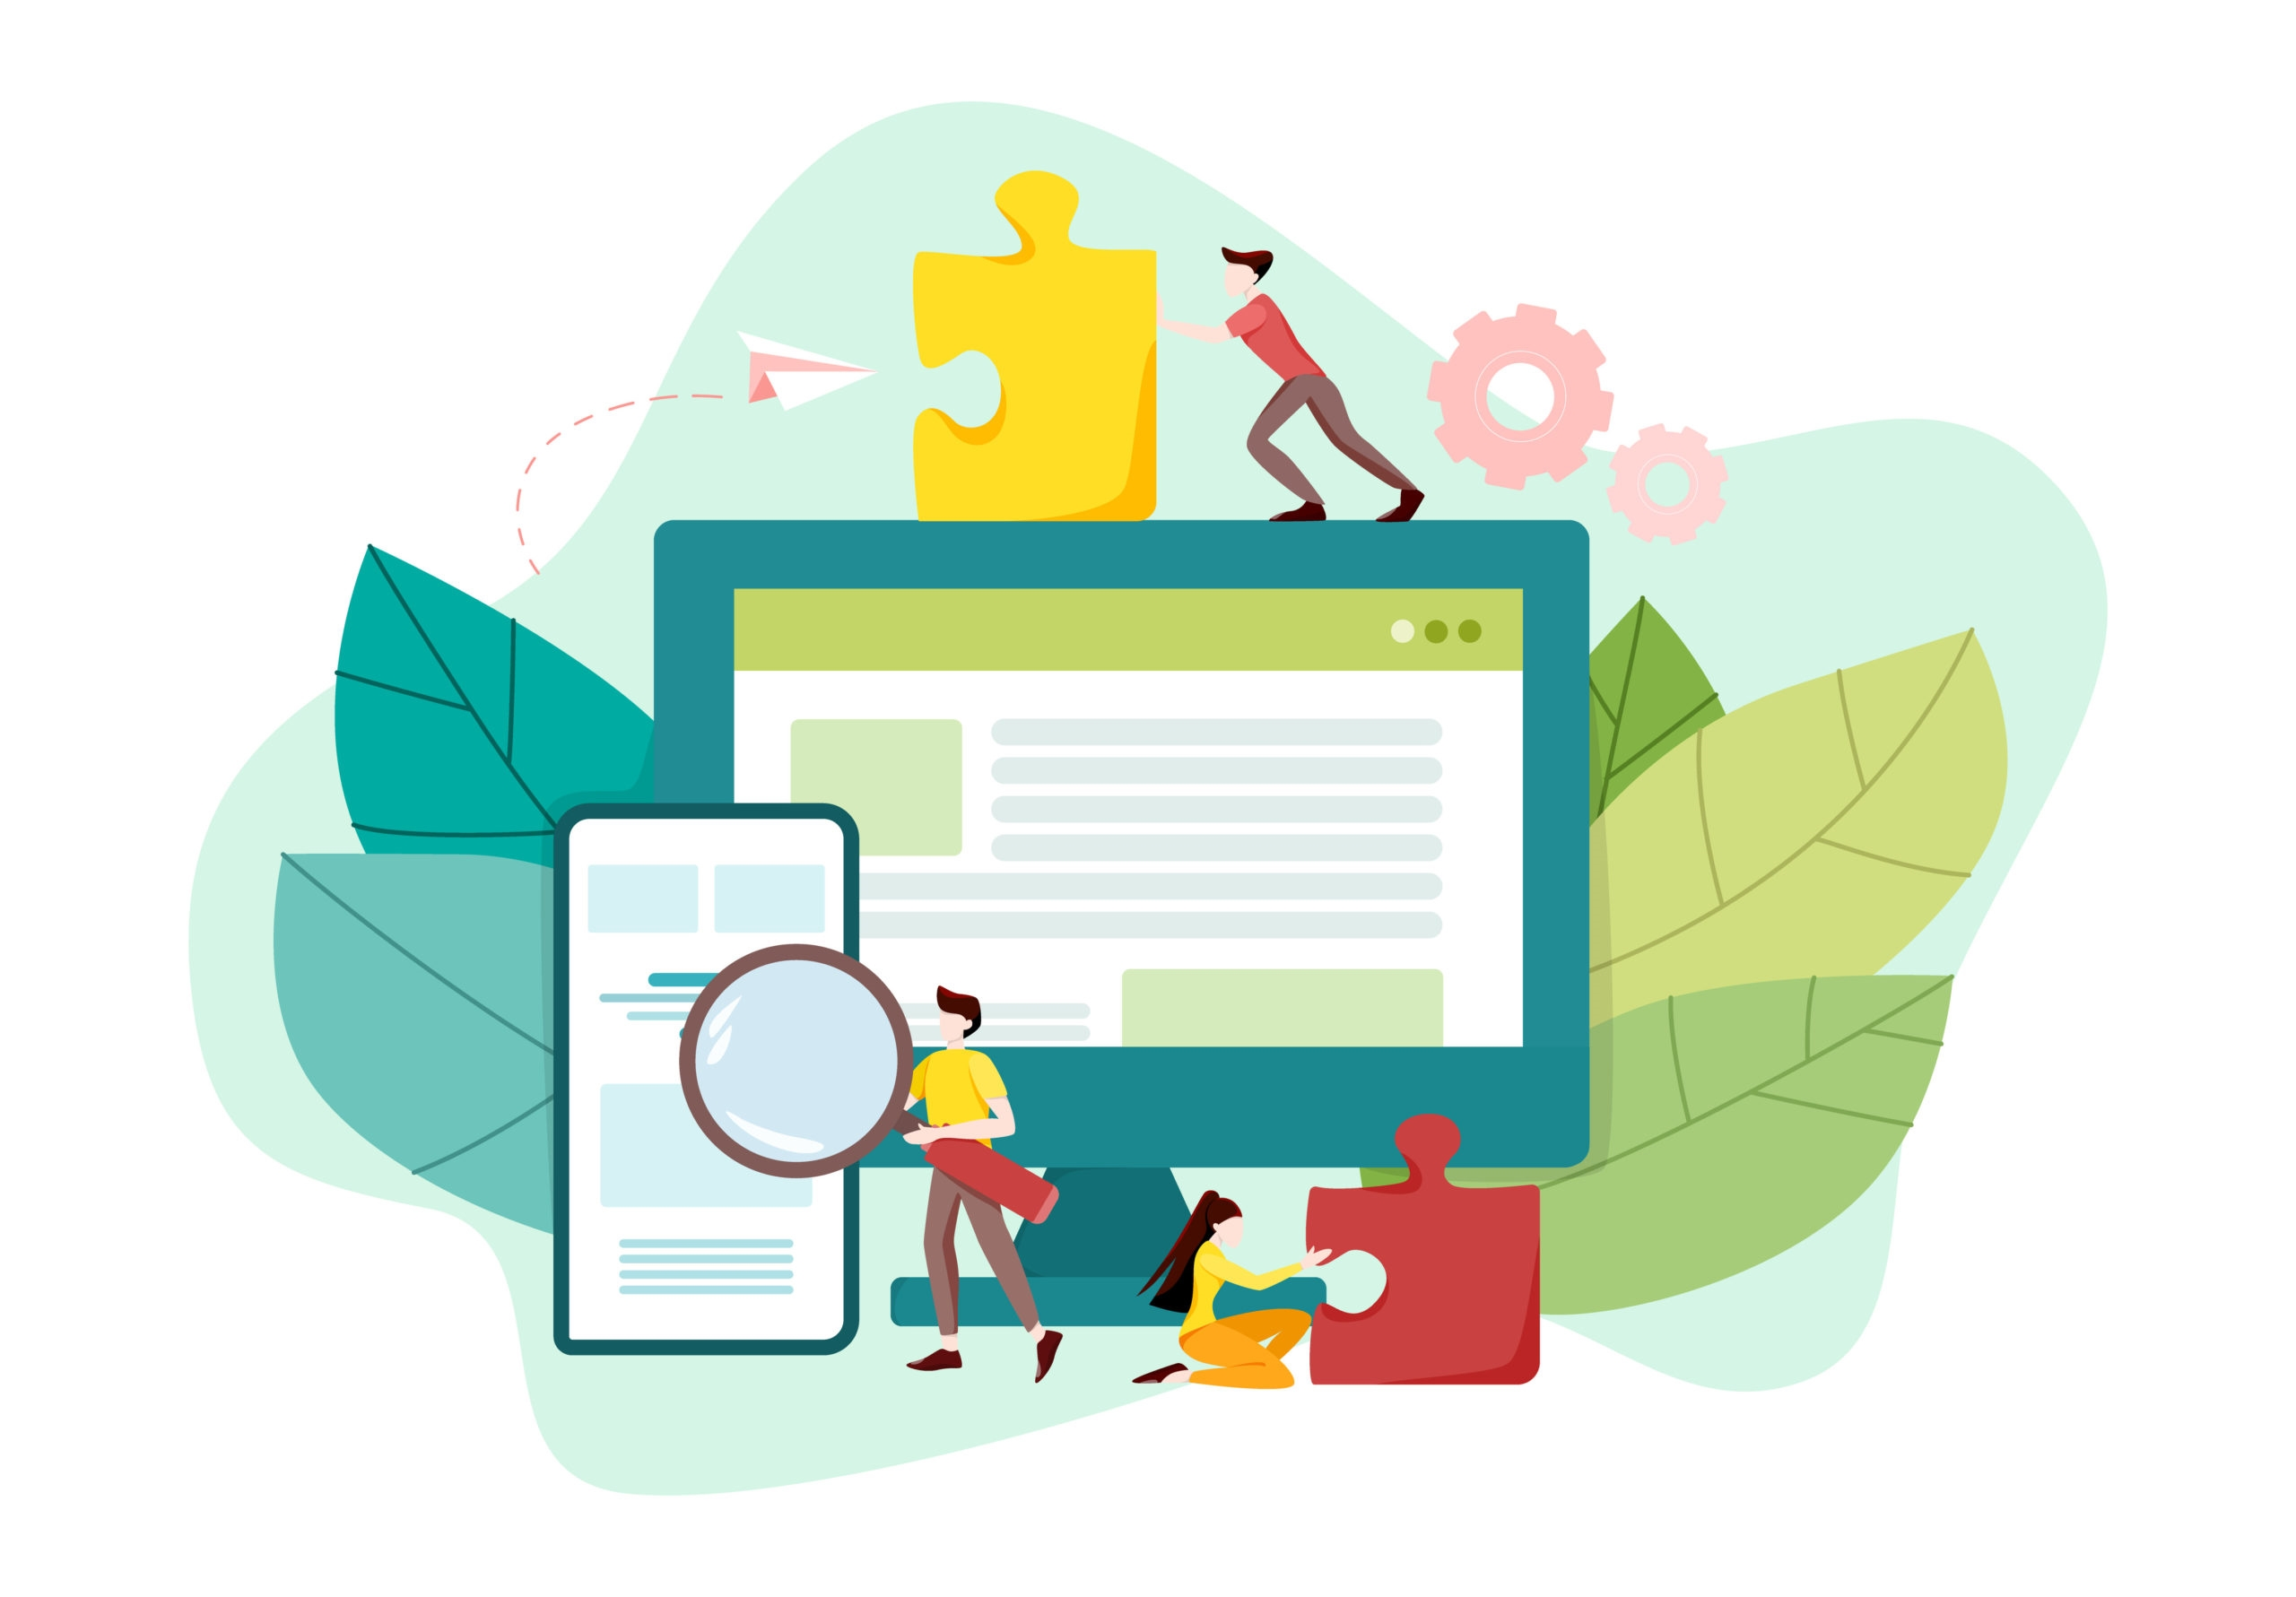 5 Tips to Create High-Converting Landing Pages